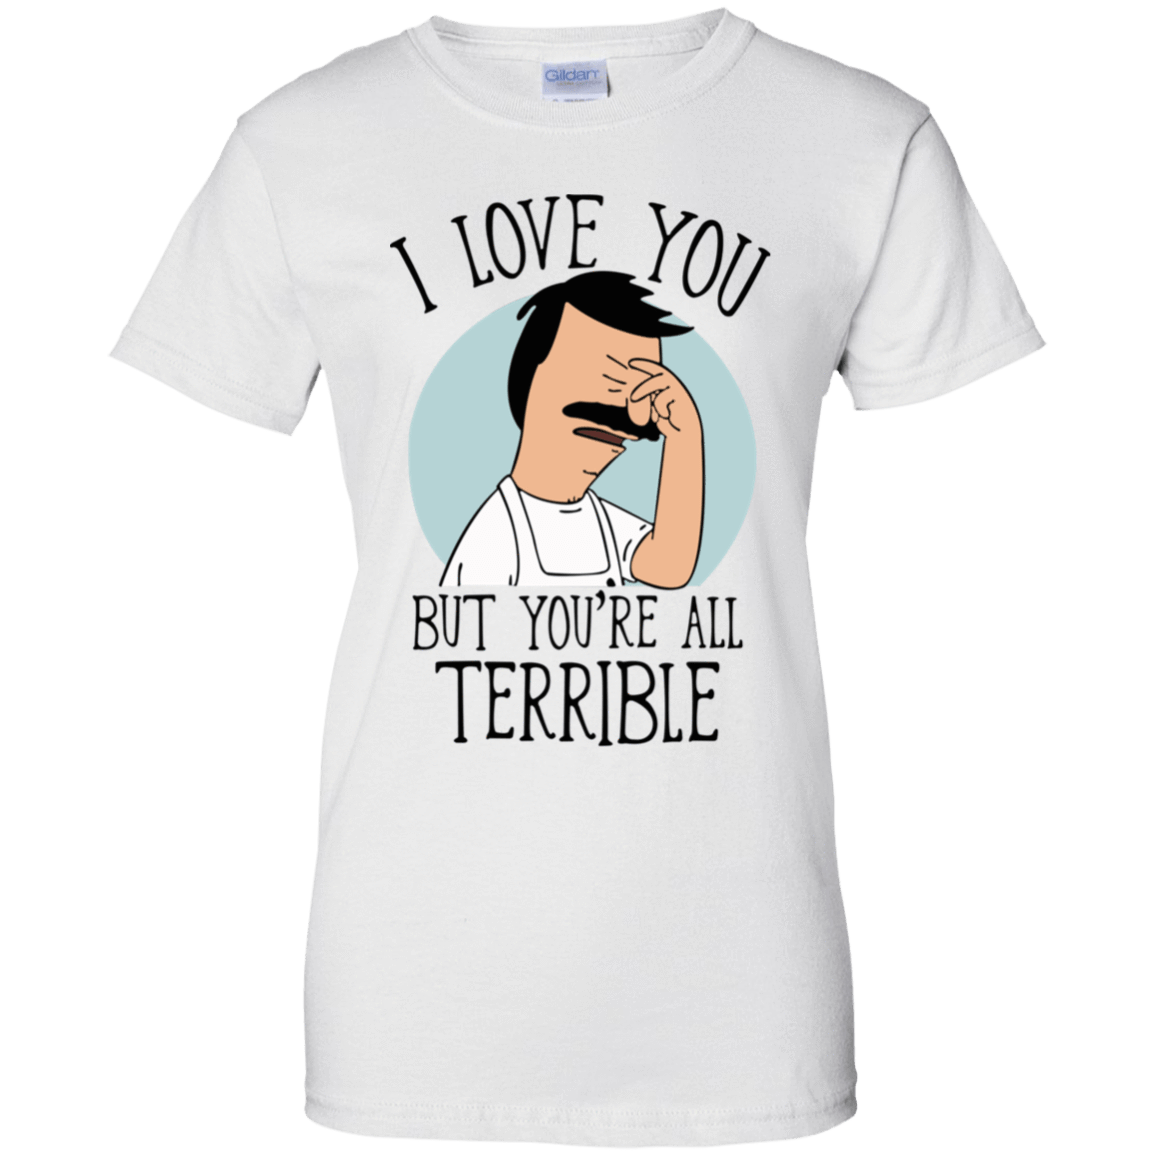 Bob's Burgers: I Love You But You're All Terrible 939-9247-72789301-44814 - Tee Ript